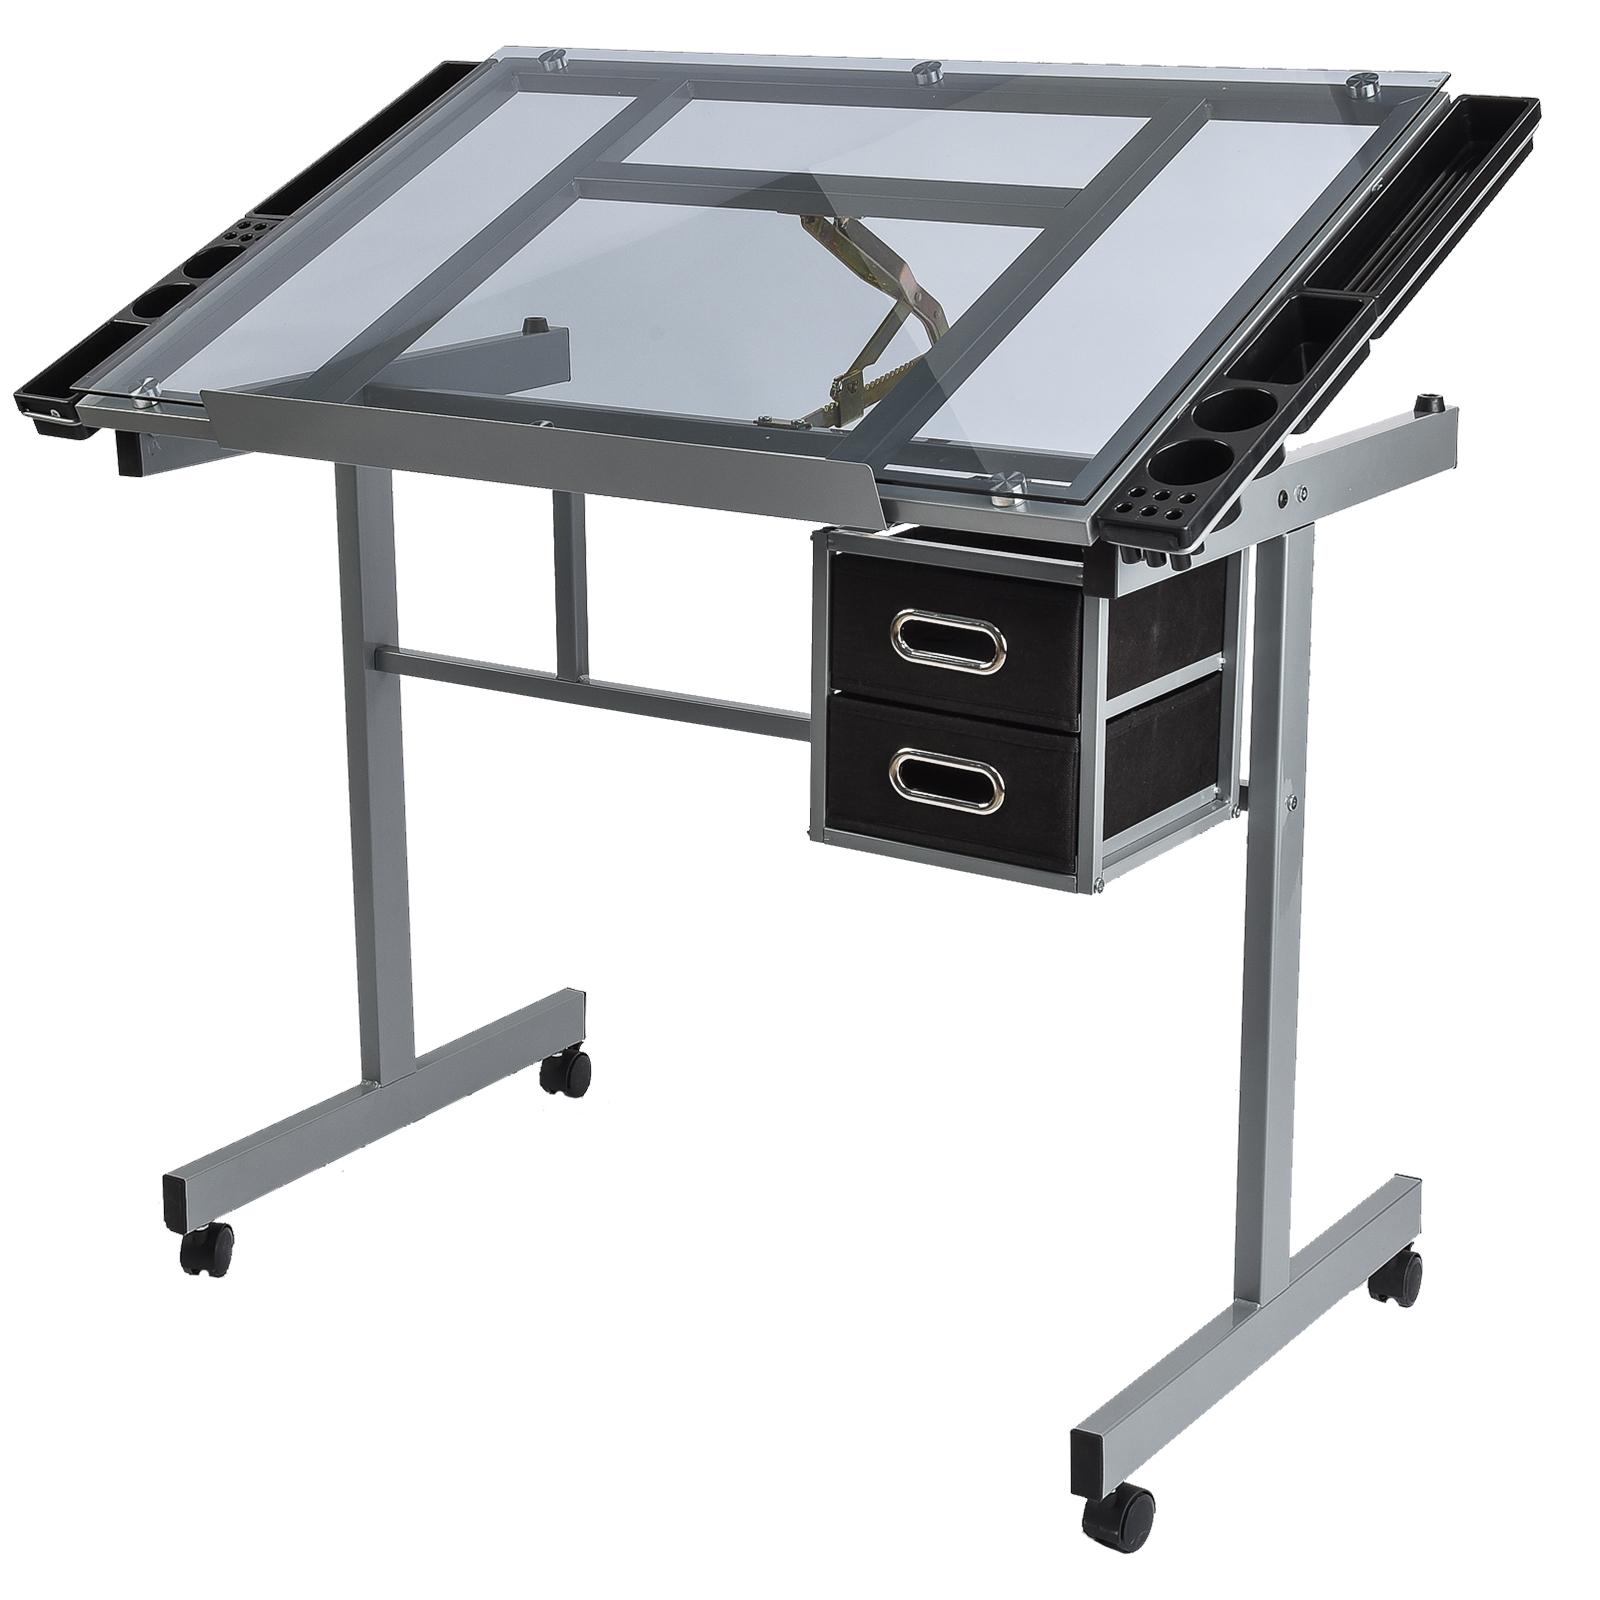 Mecor Tempered Glass Top Adjustable Drafting Table Art Craft Drawing Desk  With 2 Drawers And Wheels